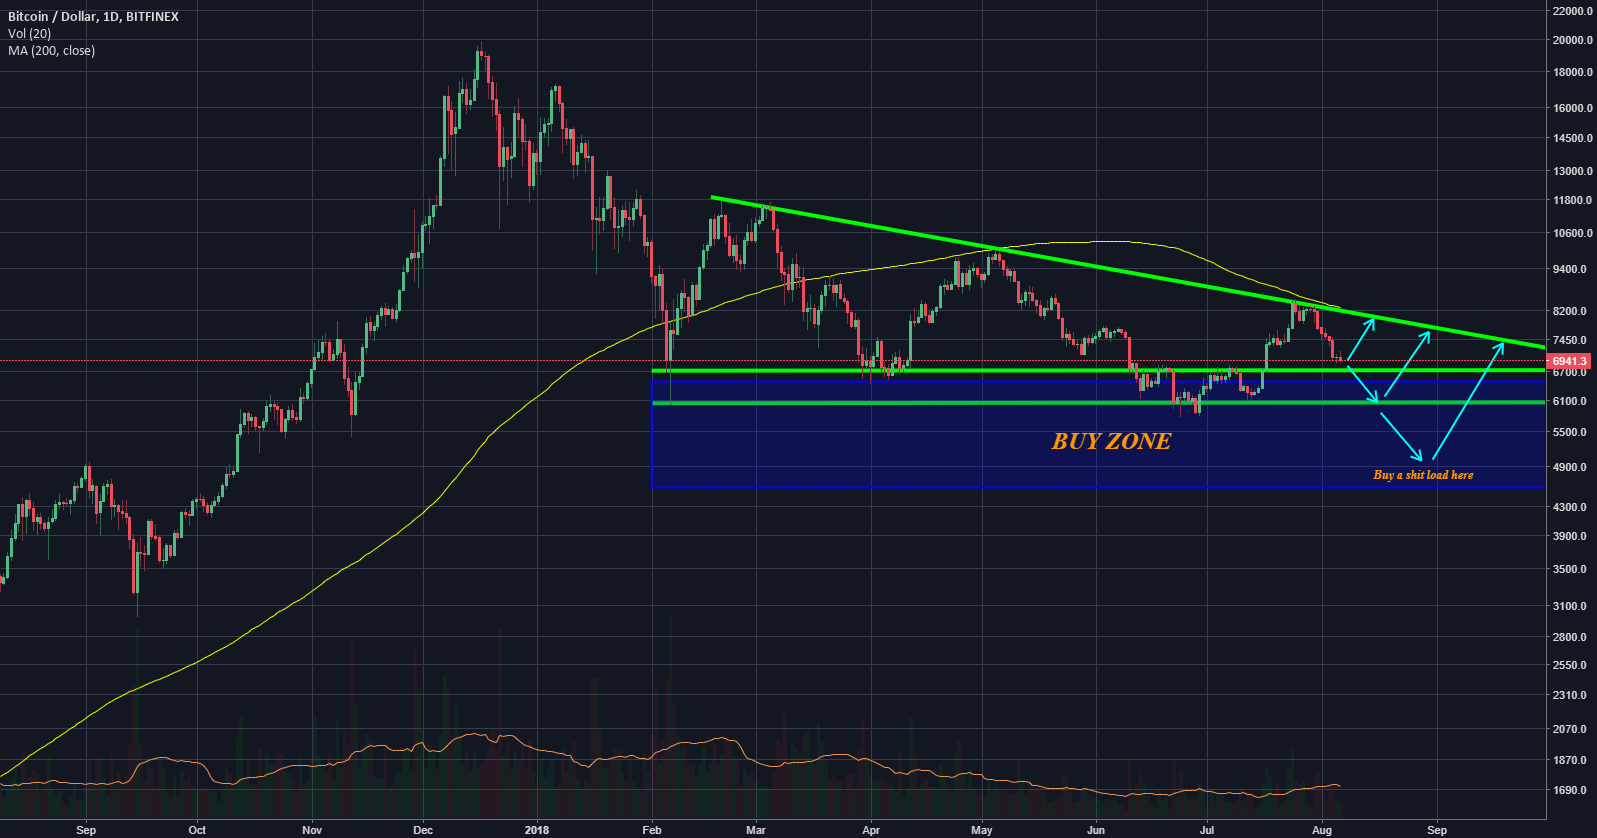 Where The Buy Zone At ? #bitcoin